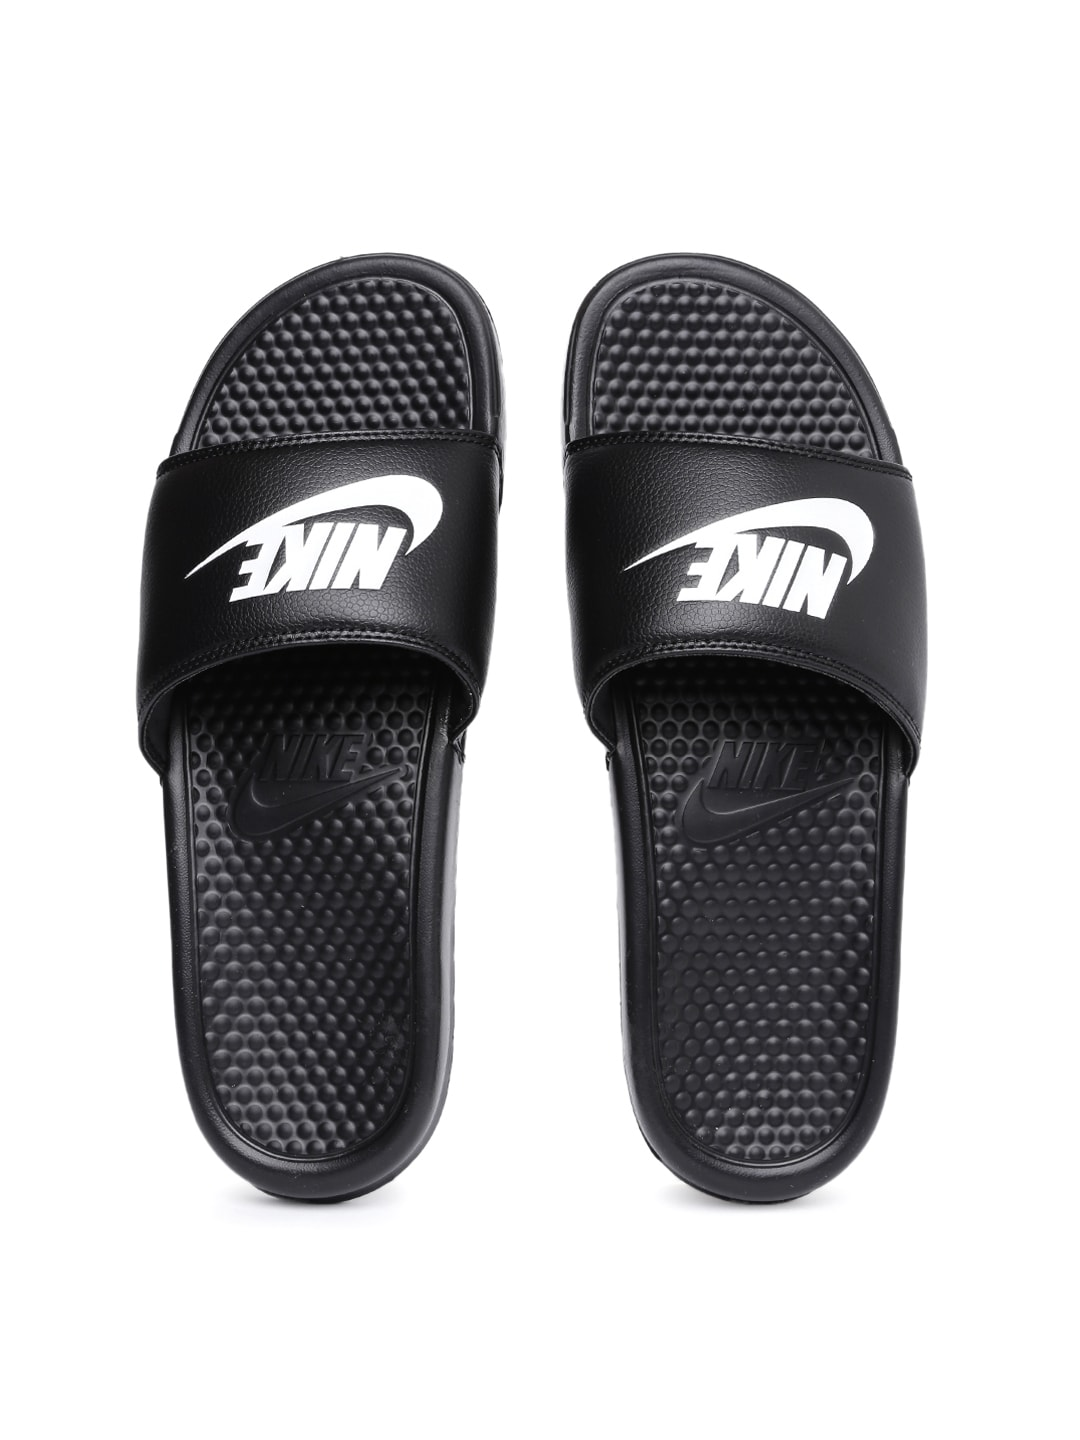 74a129bc5ec Nike Flip-Flops - Buy Nike Flip-Flops for Men Women Online